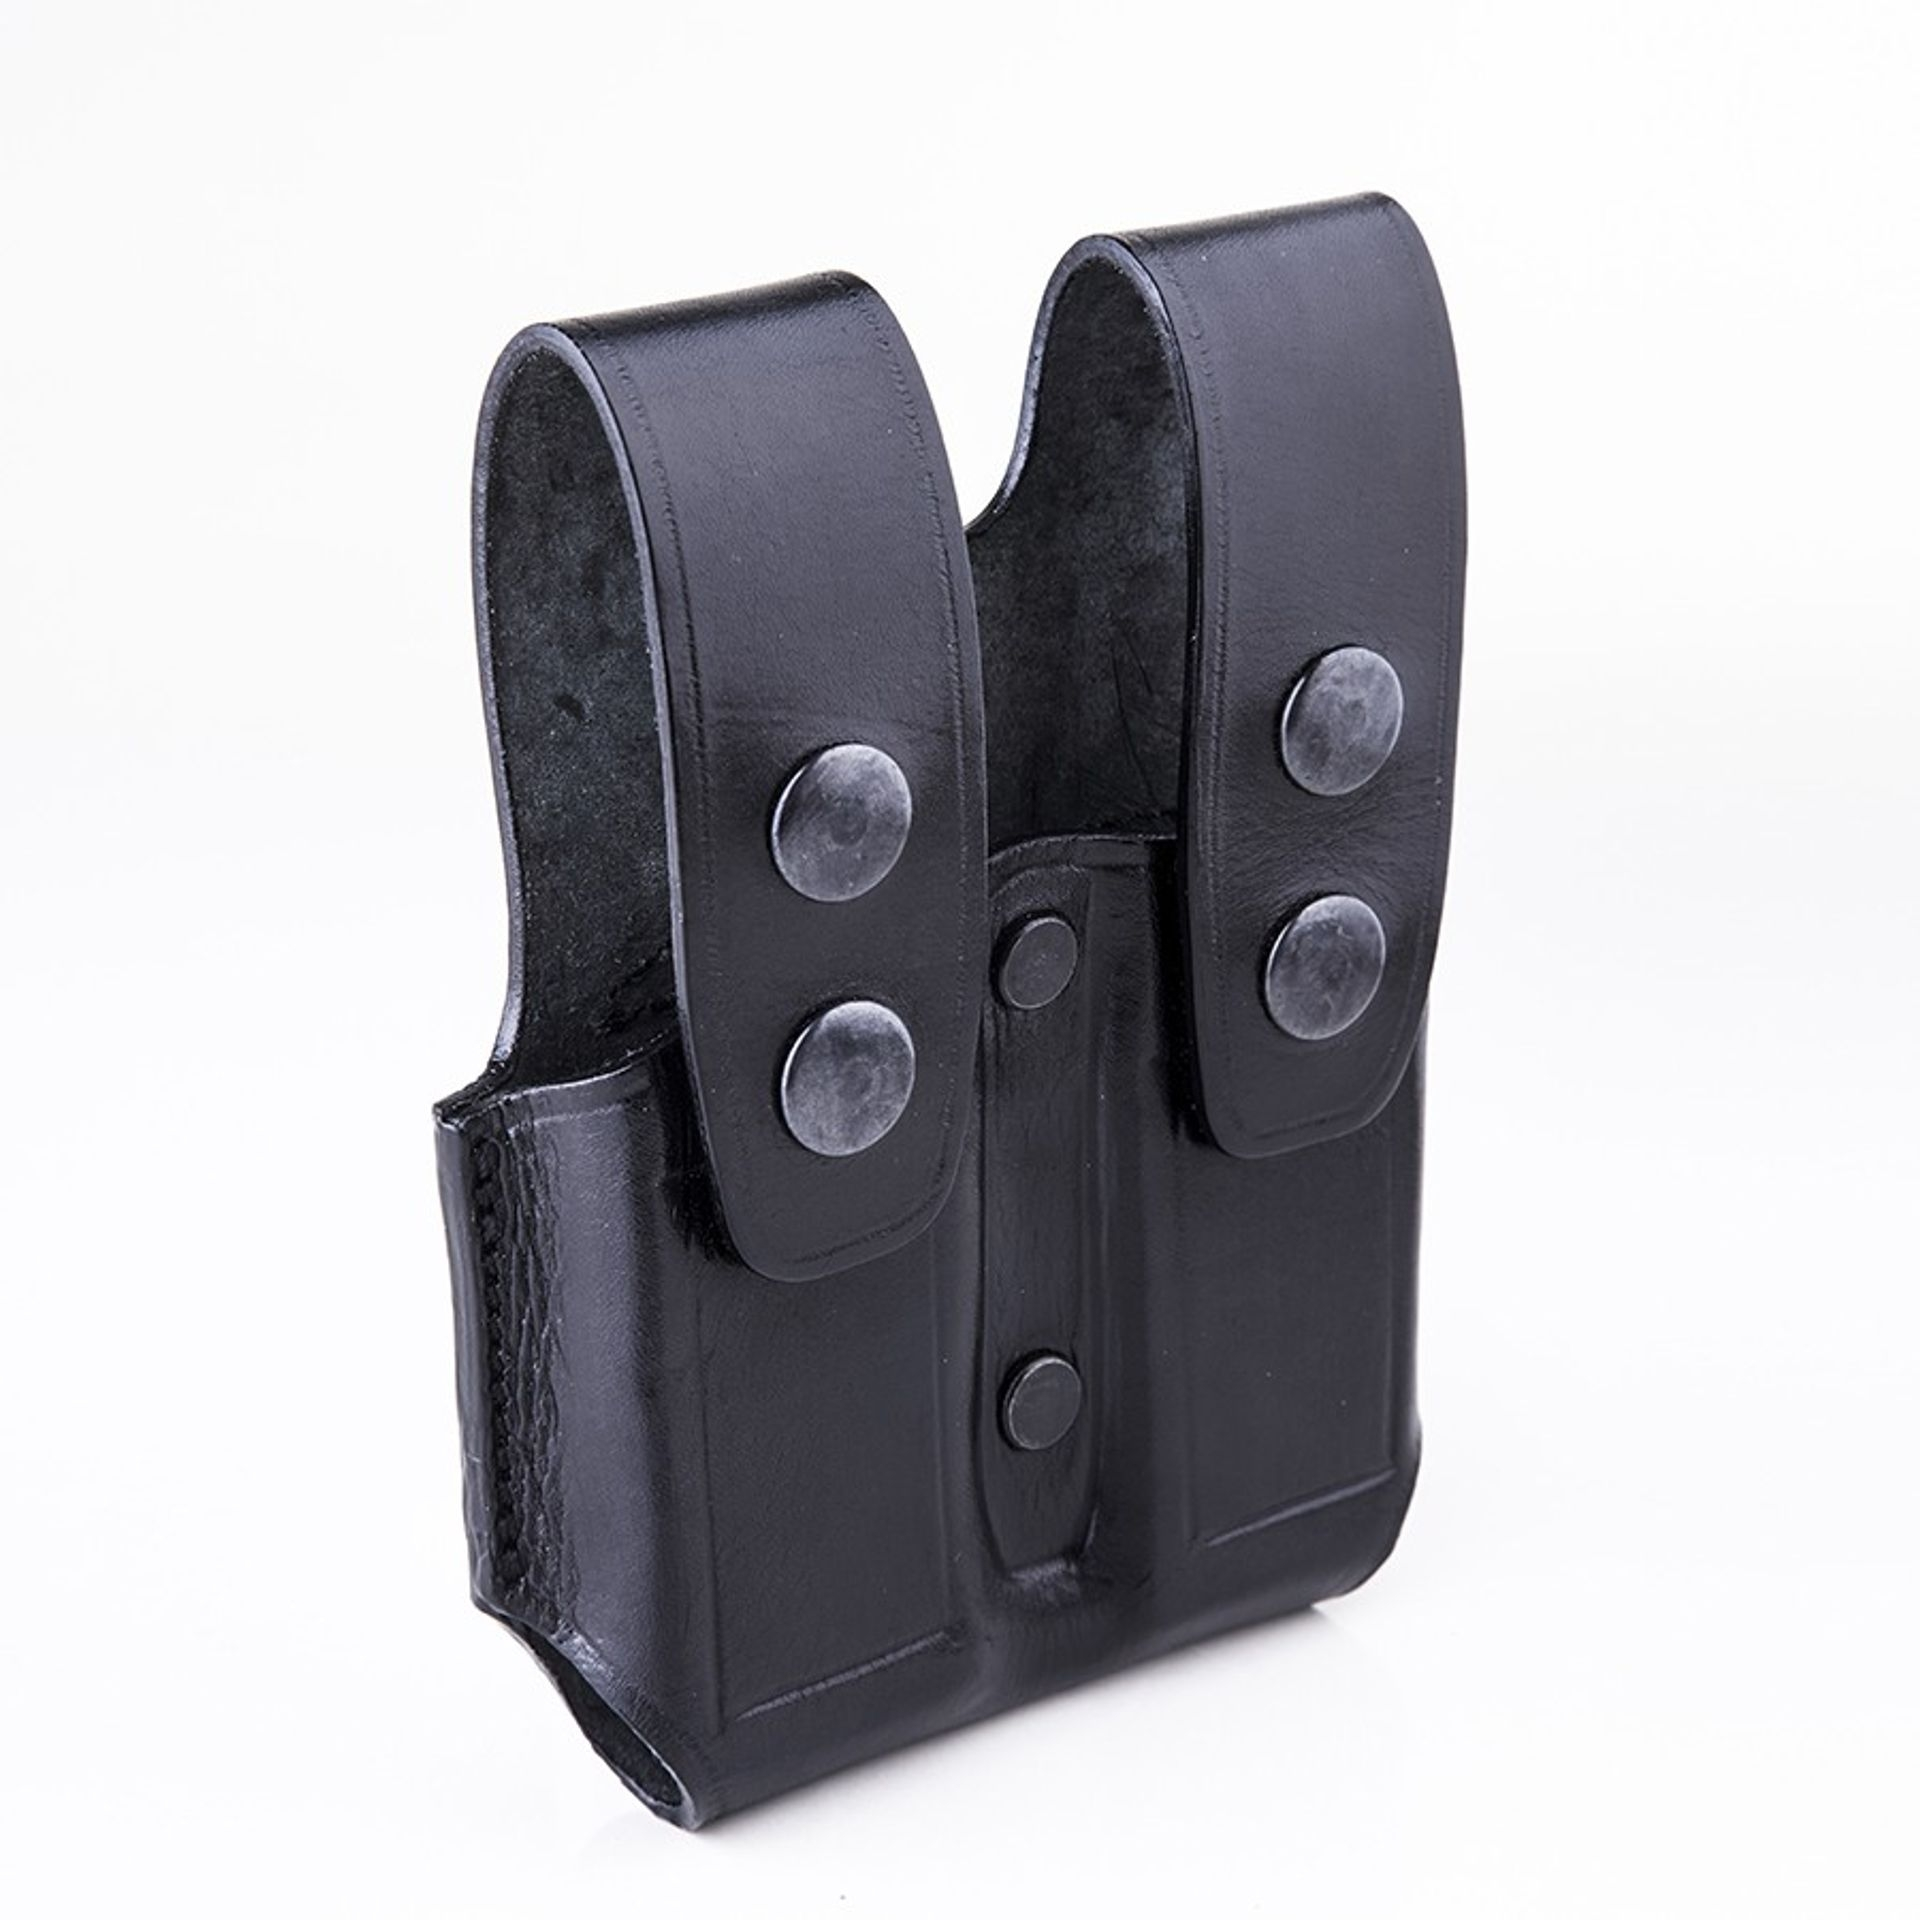 Double Magazine Pouch – Open Top for 9mm Glock Magazine